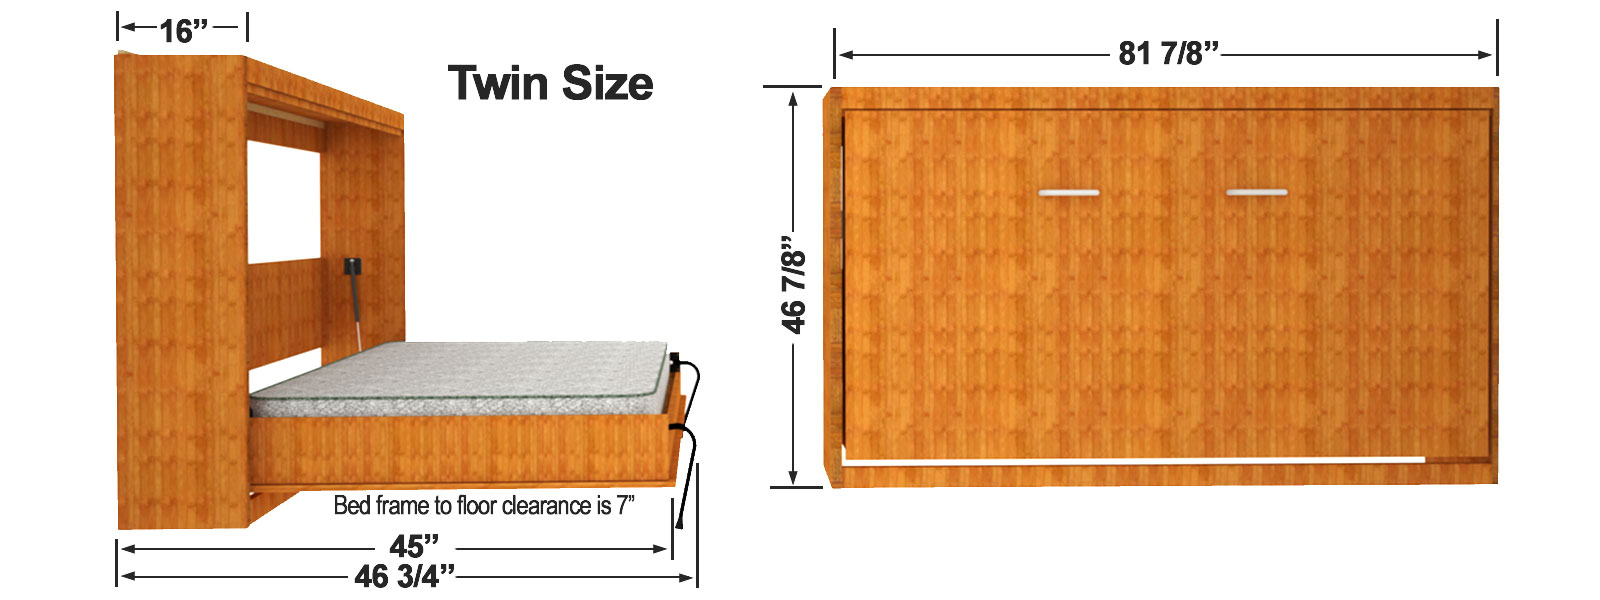 Twin Size Horizontal Wall Bed Cabinet Dimensions